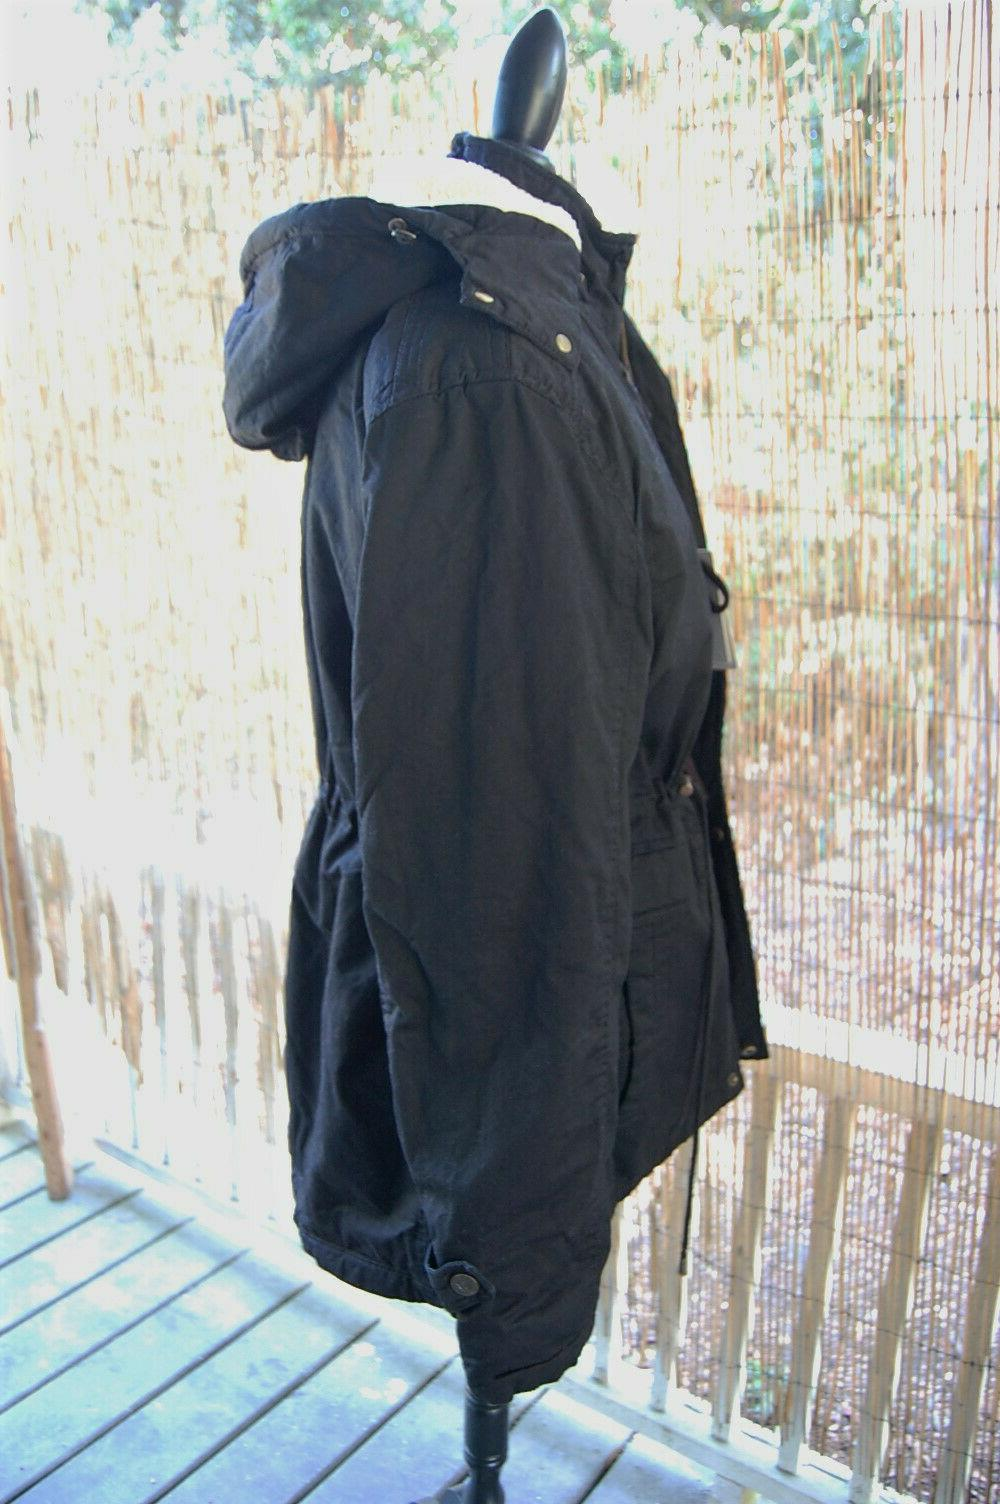 Women's Winter Jacket, Cotton, Removable Black, NWT, Wantdo,